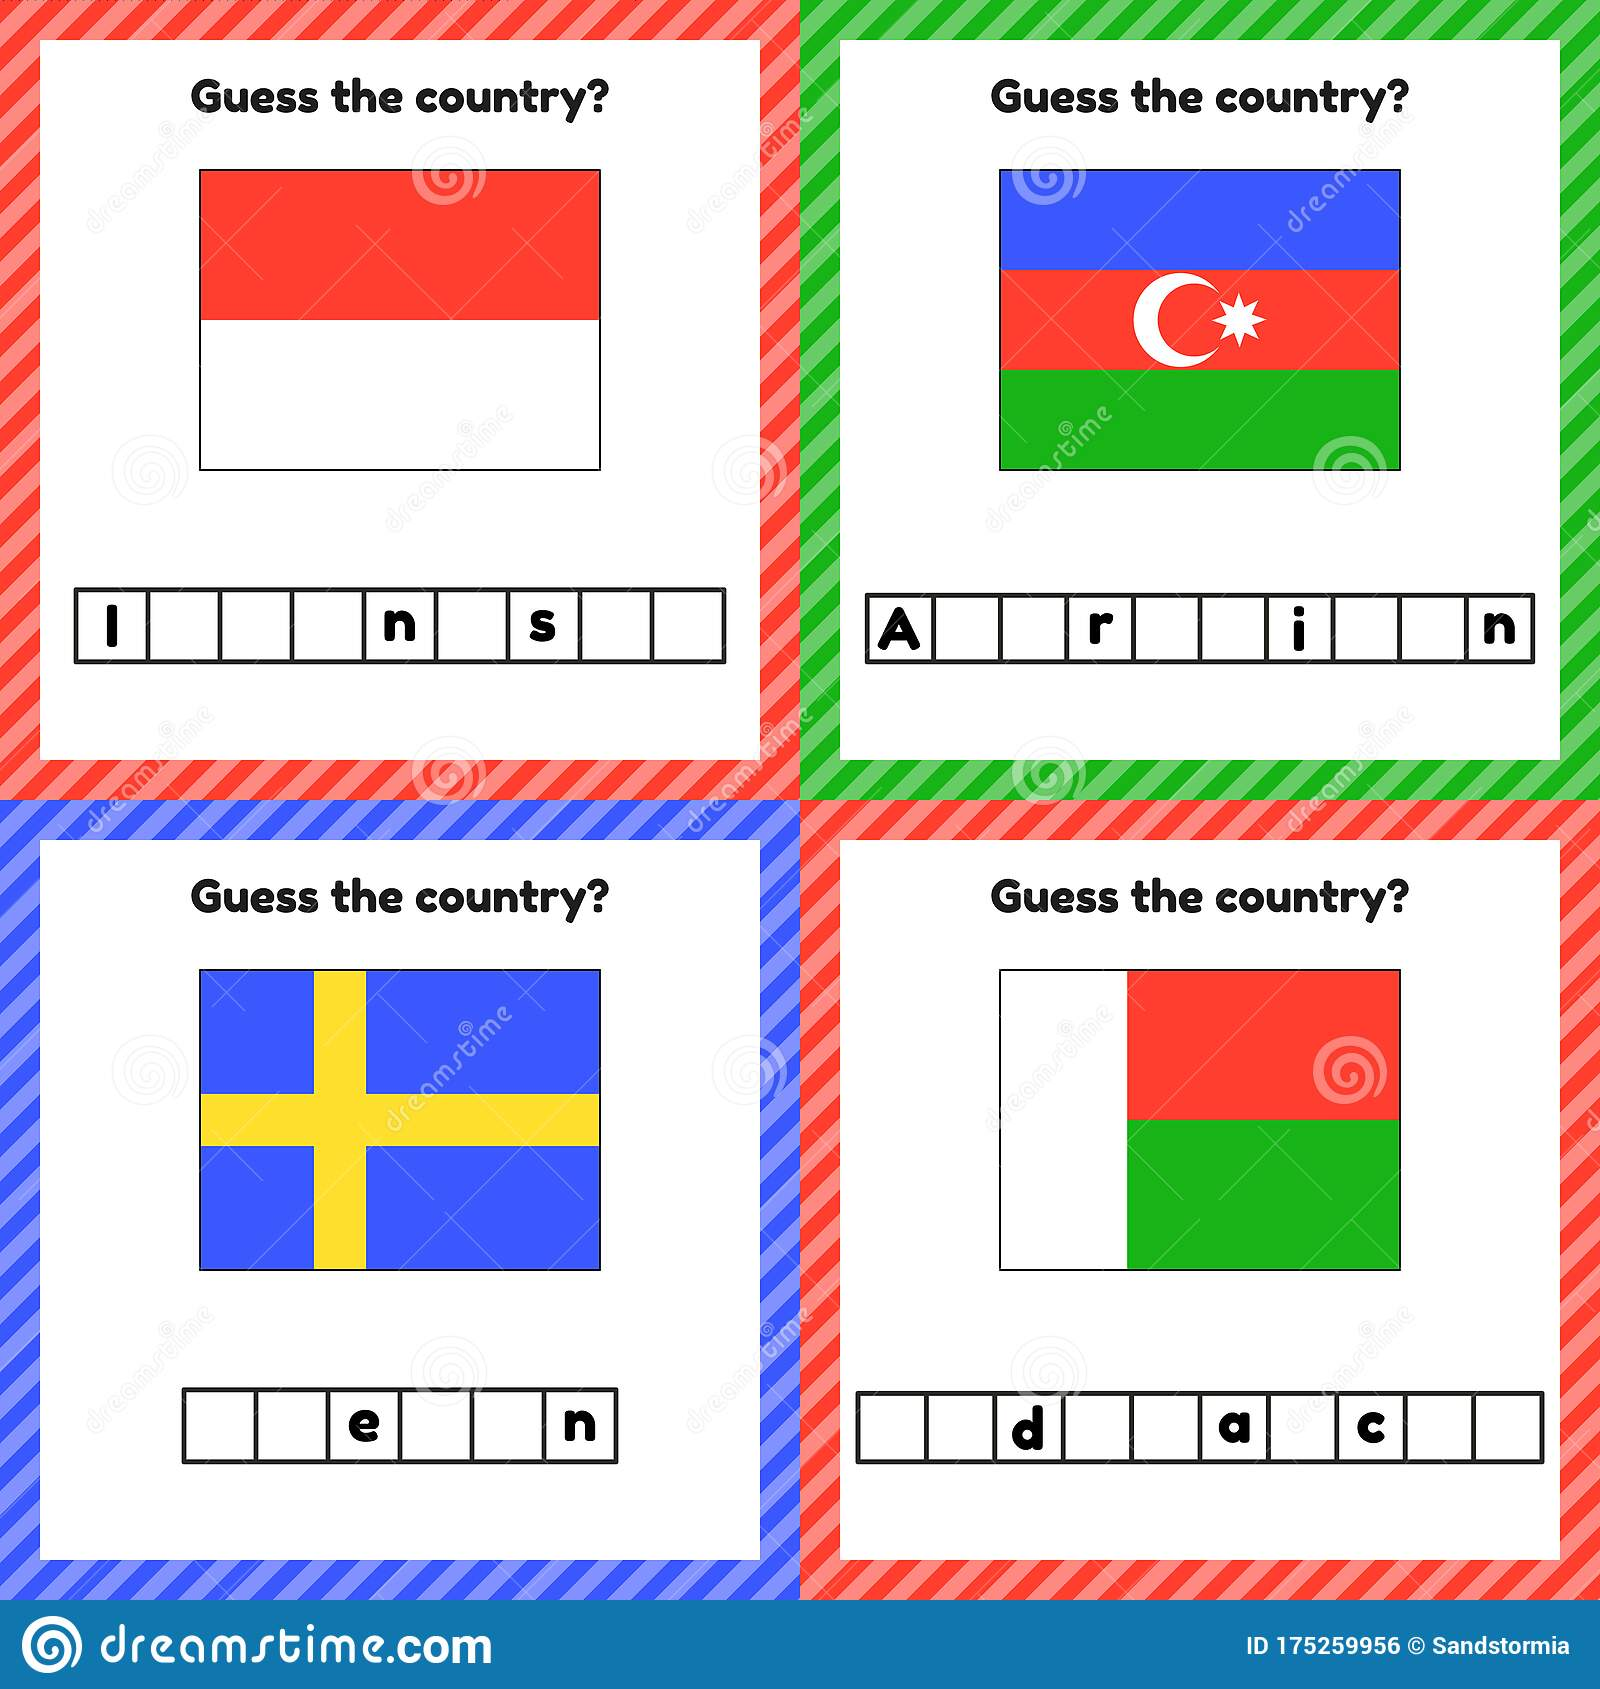 Worksheet On Geography For Preschool And School Kids